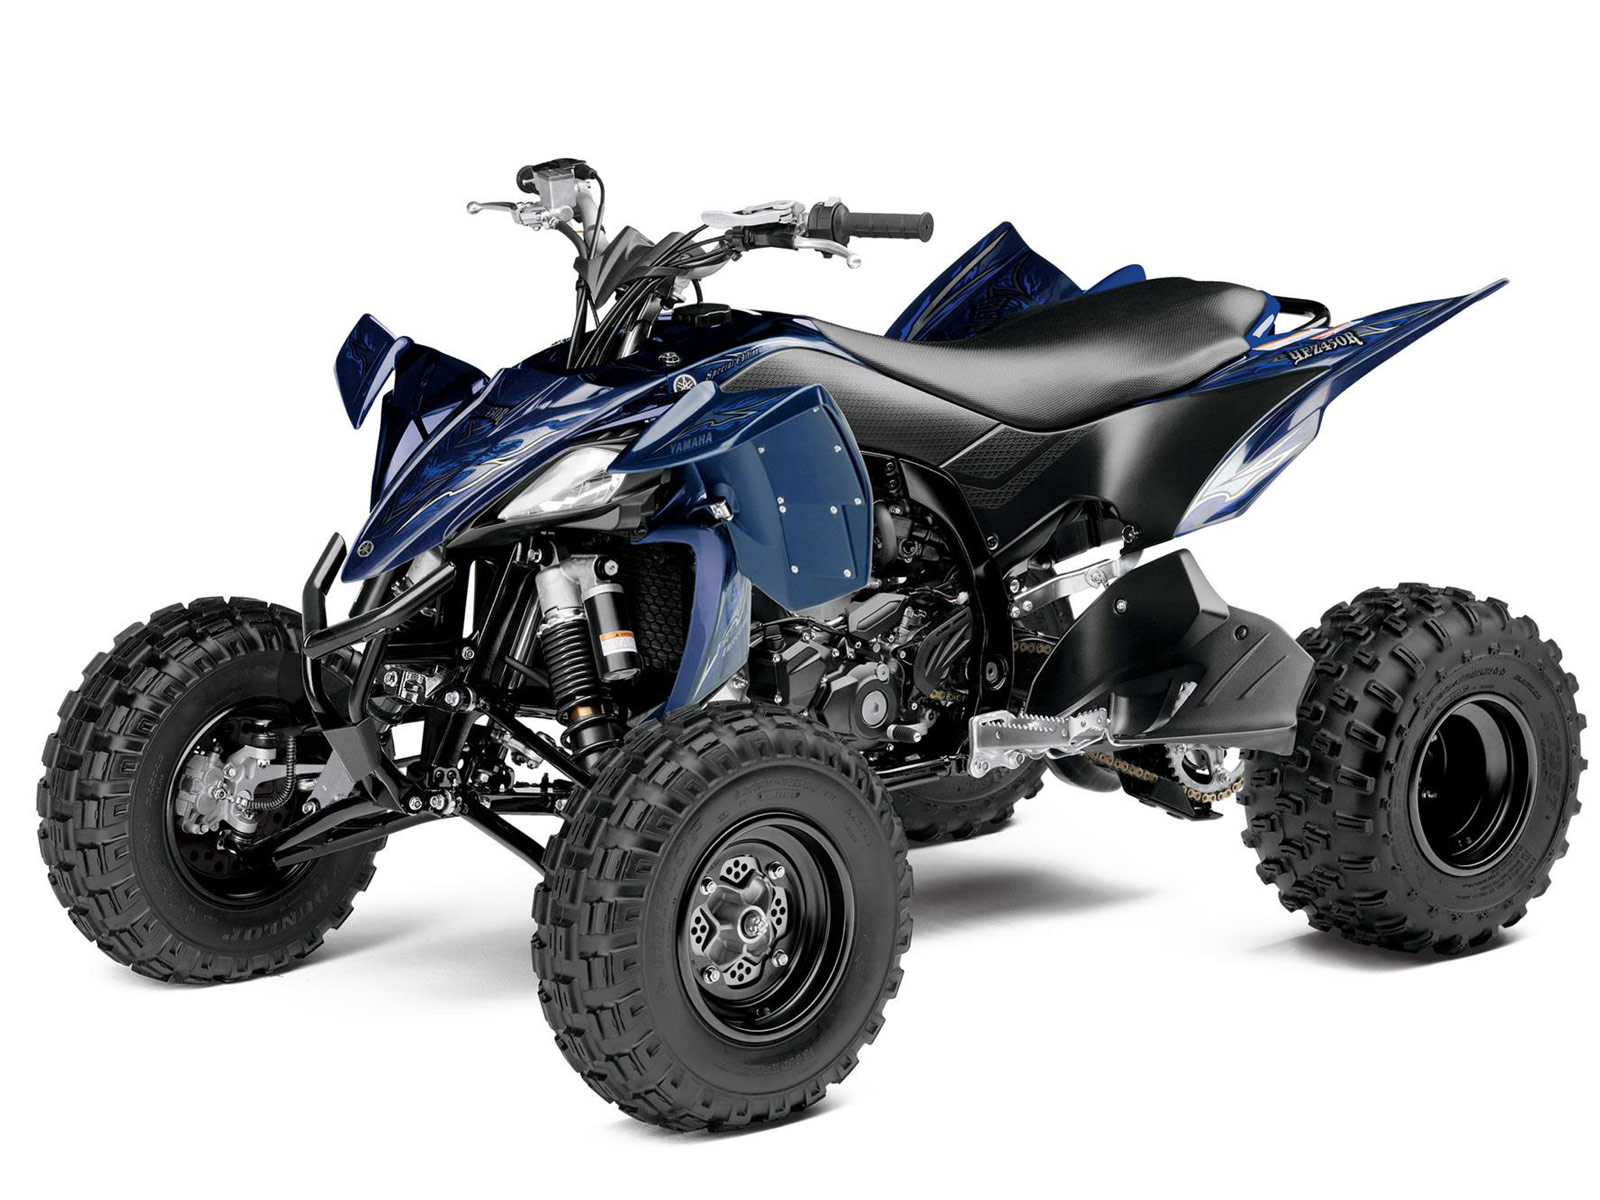 2013 raptor yfz450r se yamaha atv pictures specifications. Black Bedroom Furniture Sets. Home Design Ideas